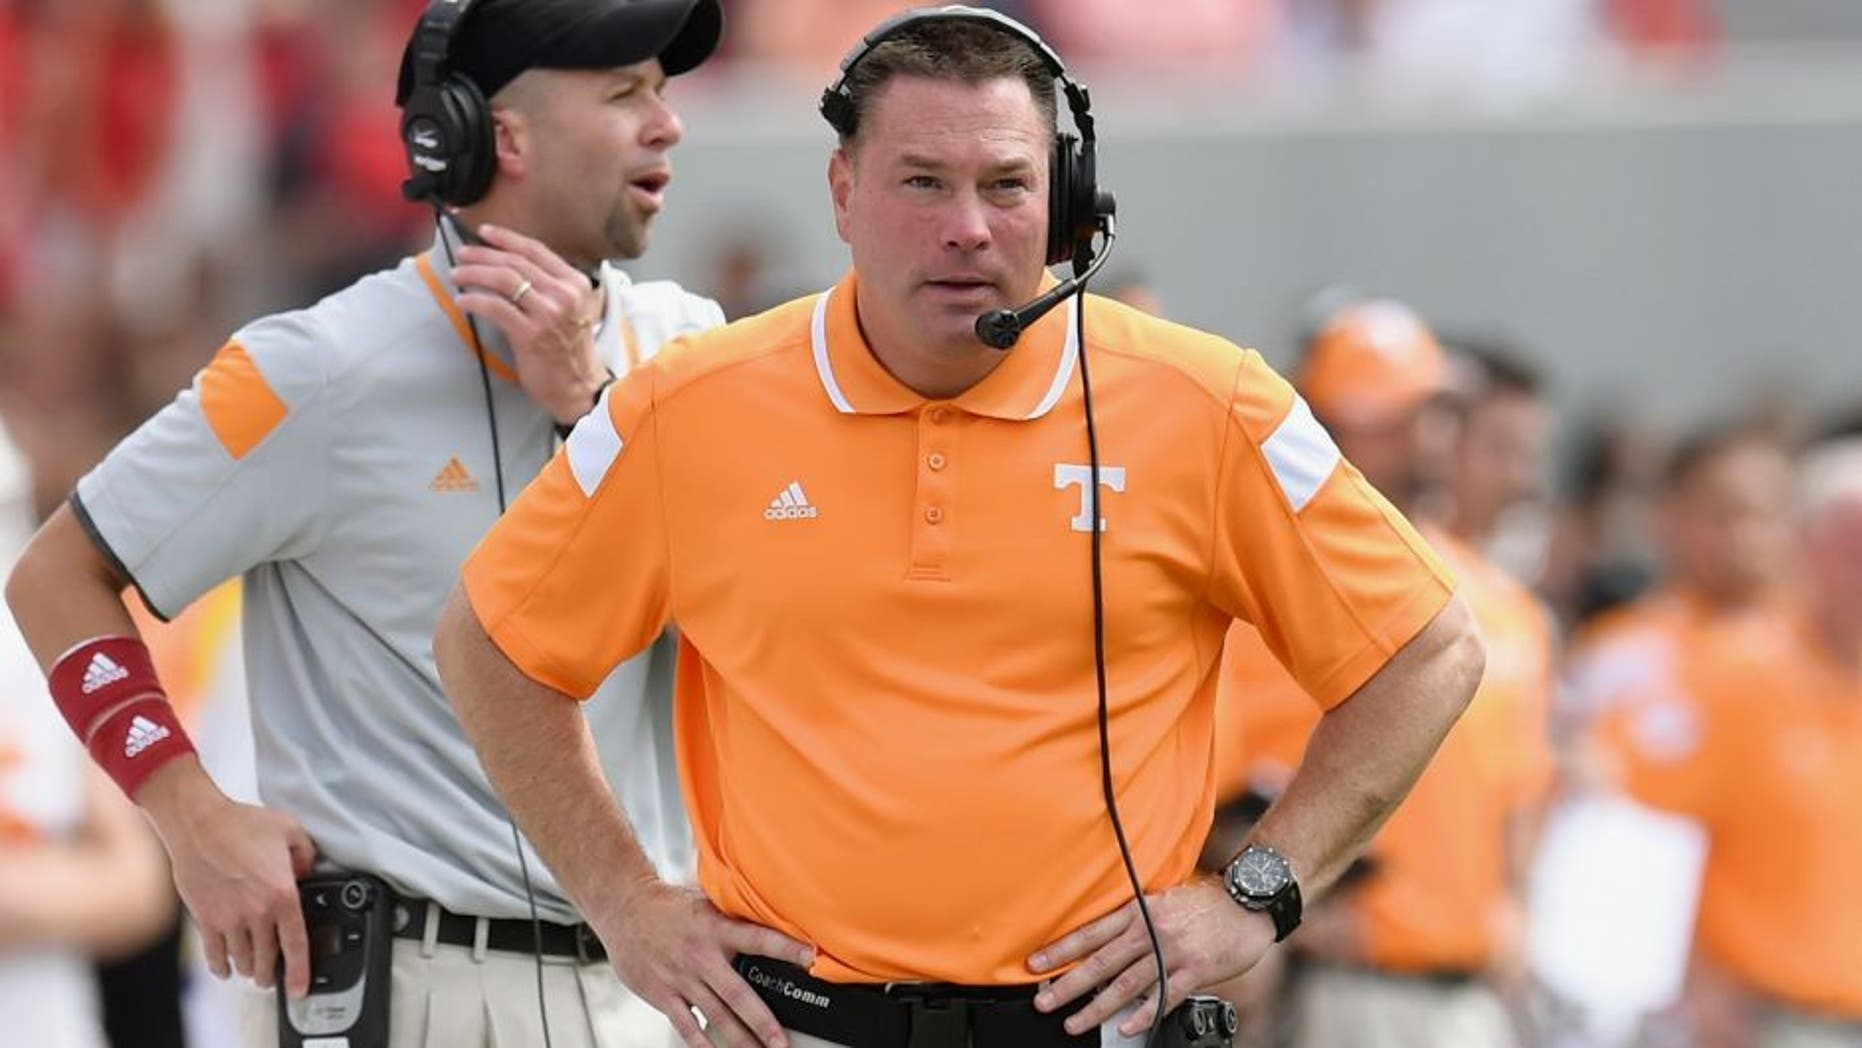 Sep 27, 2014; Athens, GA, USA; Tennessee Volunteers head coach Butch Jones shown on the sidelines against the Georgia Bulldogs during the first half at Sanford Stadium. Georgia defeated Tennessee 35-32. Mandatory Credit: Dale Zanine-USA TODAY Sports